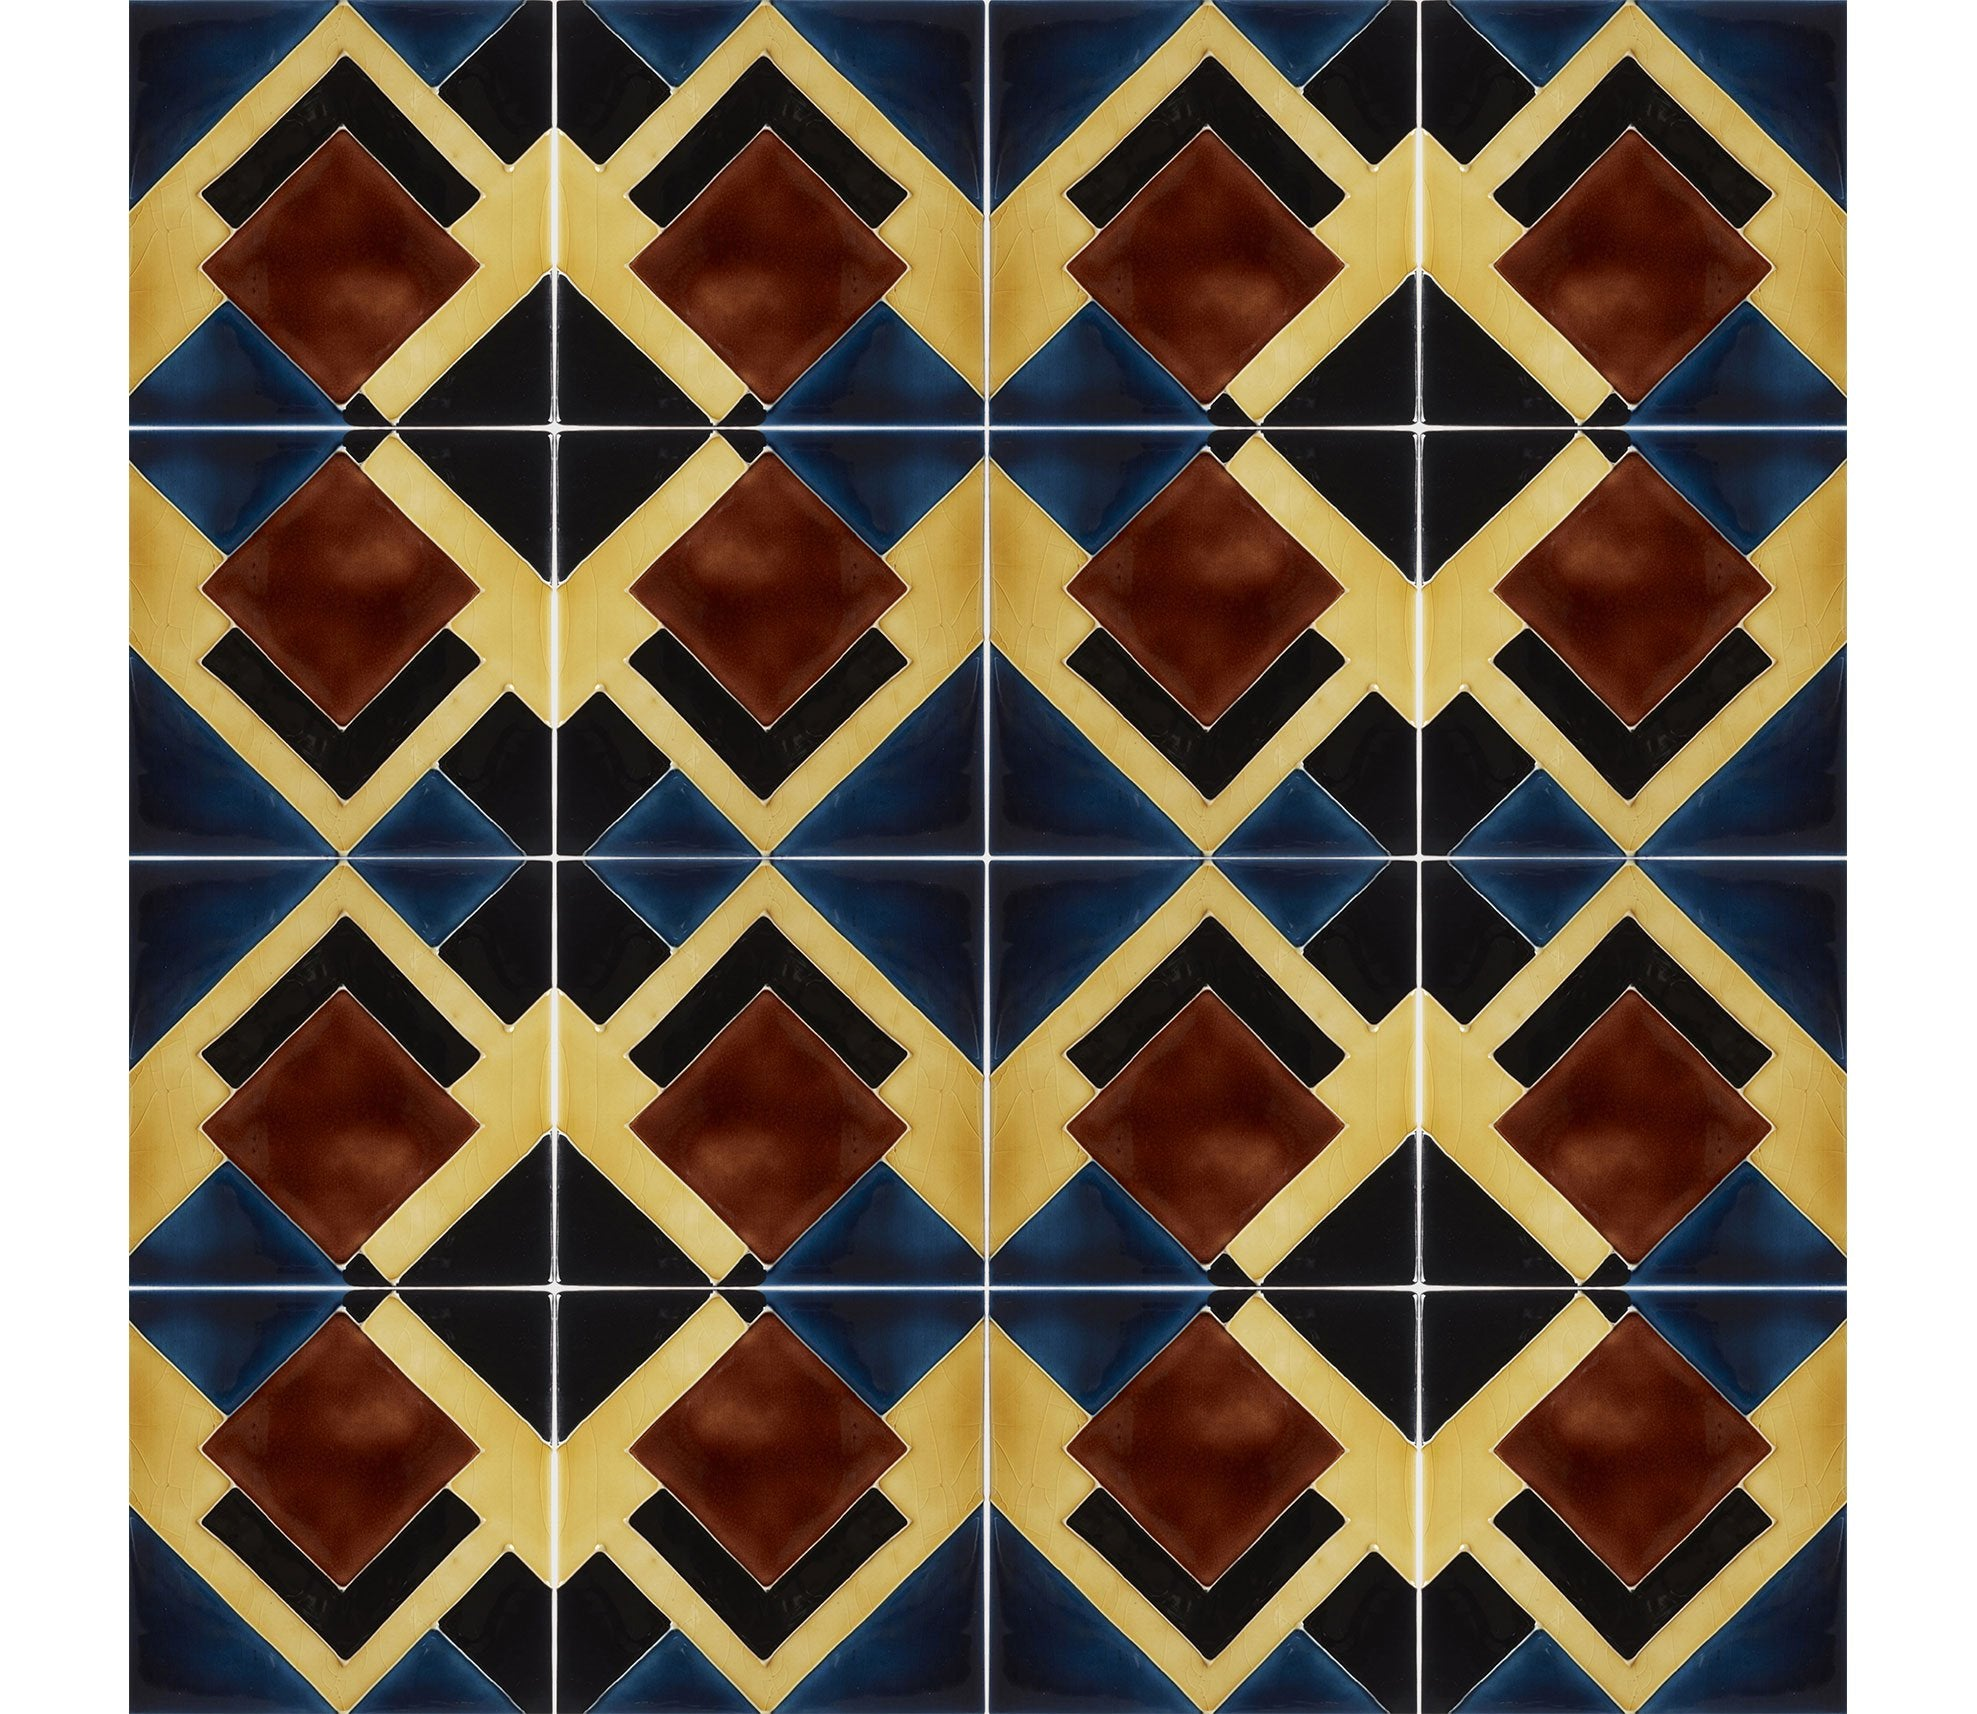 Hanley Tube Lined Decorative Tiles Product Image 45